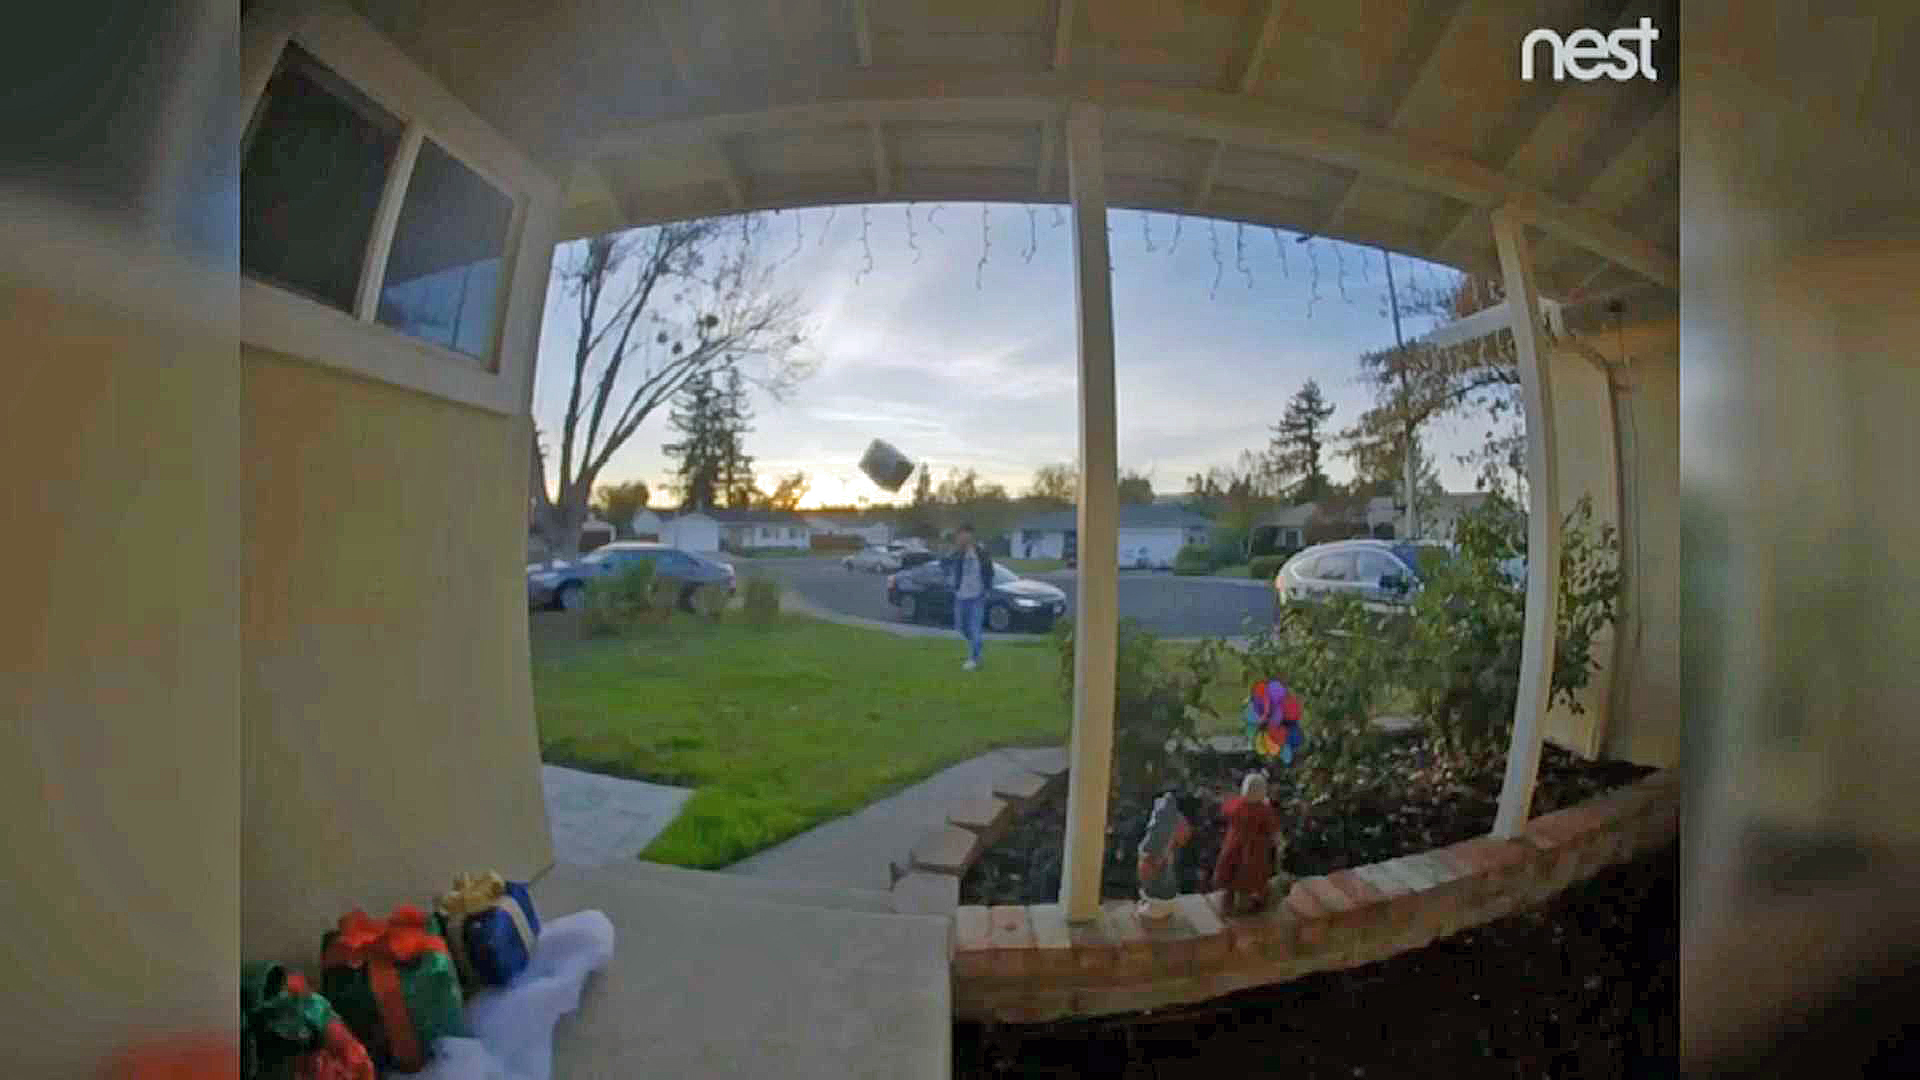 A screen shot of home surveillance video showing a delivery driver throwing an Amazon package from a home's front yard onto the porch.